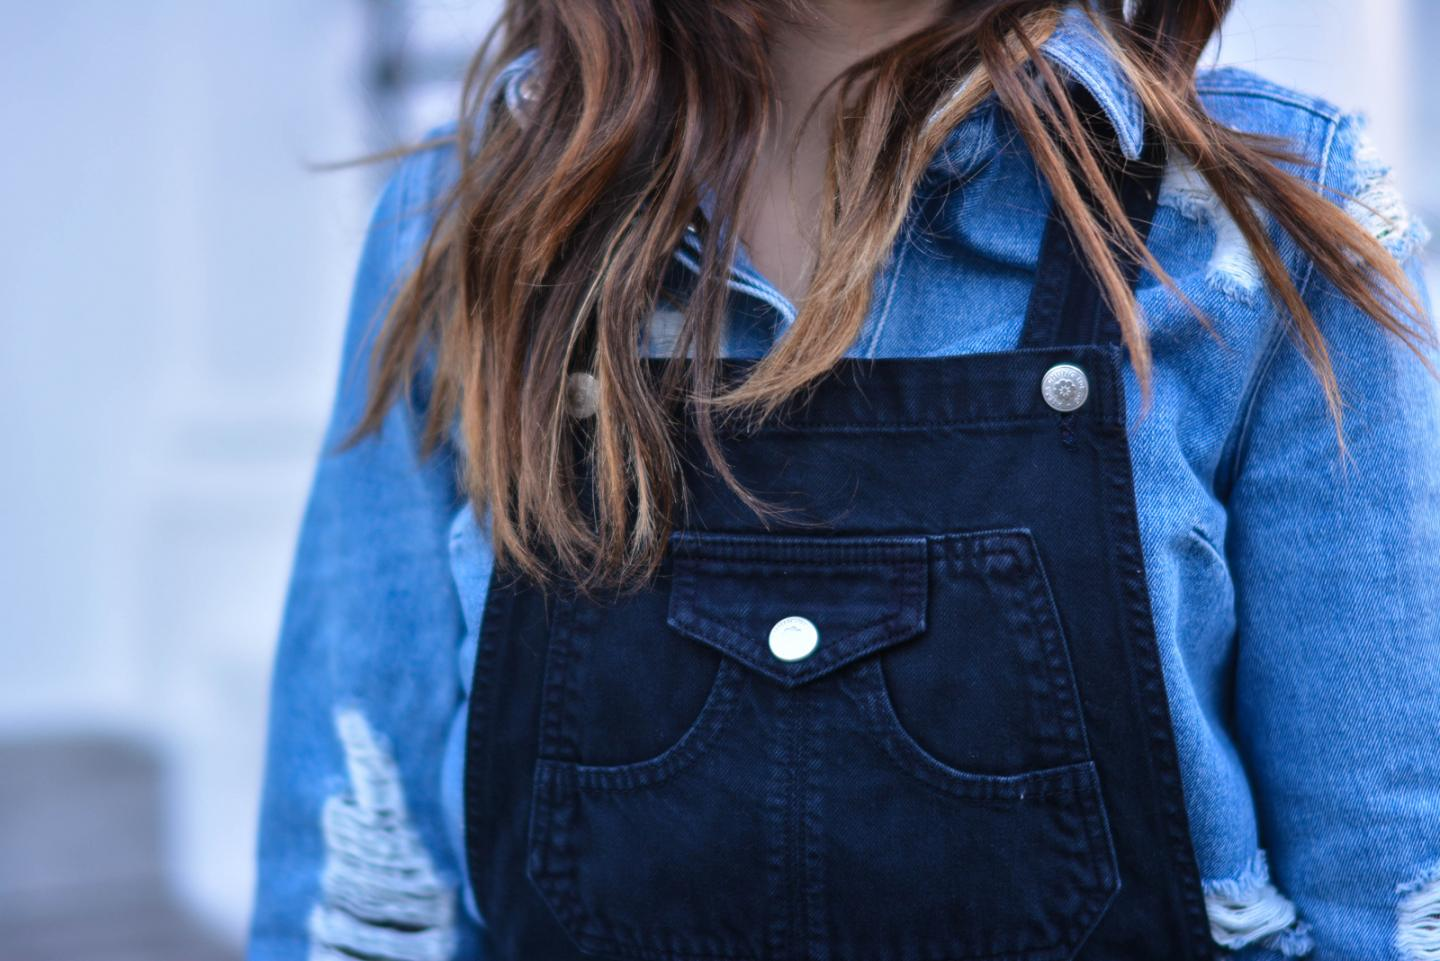 EJSTYLE - Emma Hill, fashion blogger, double denim, alexa chung x AG denim dungarees, Henry Holland denim shirt, house of holland denim shirt, denim trend, spring 2015, SS15, OOTD